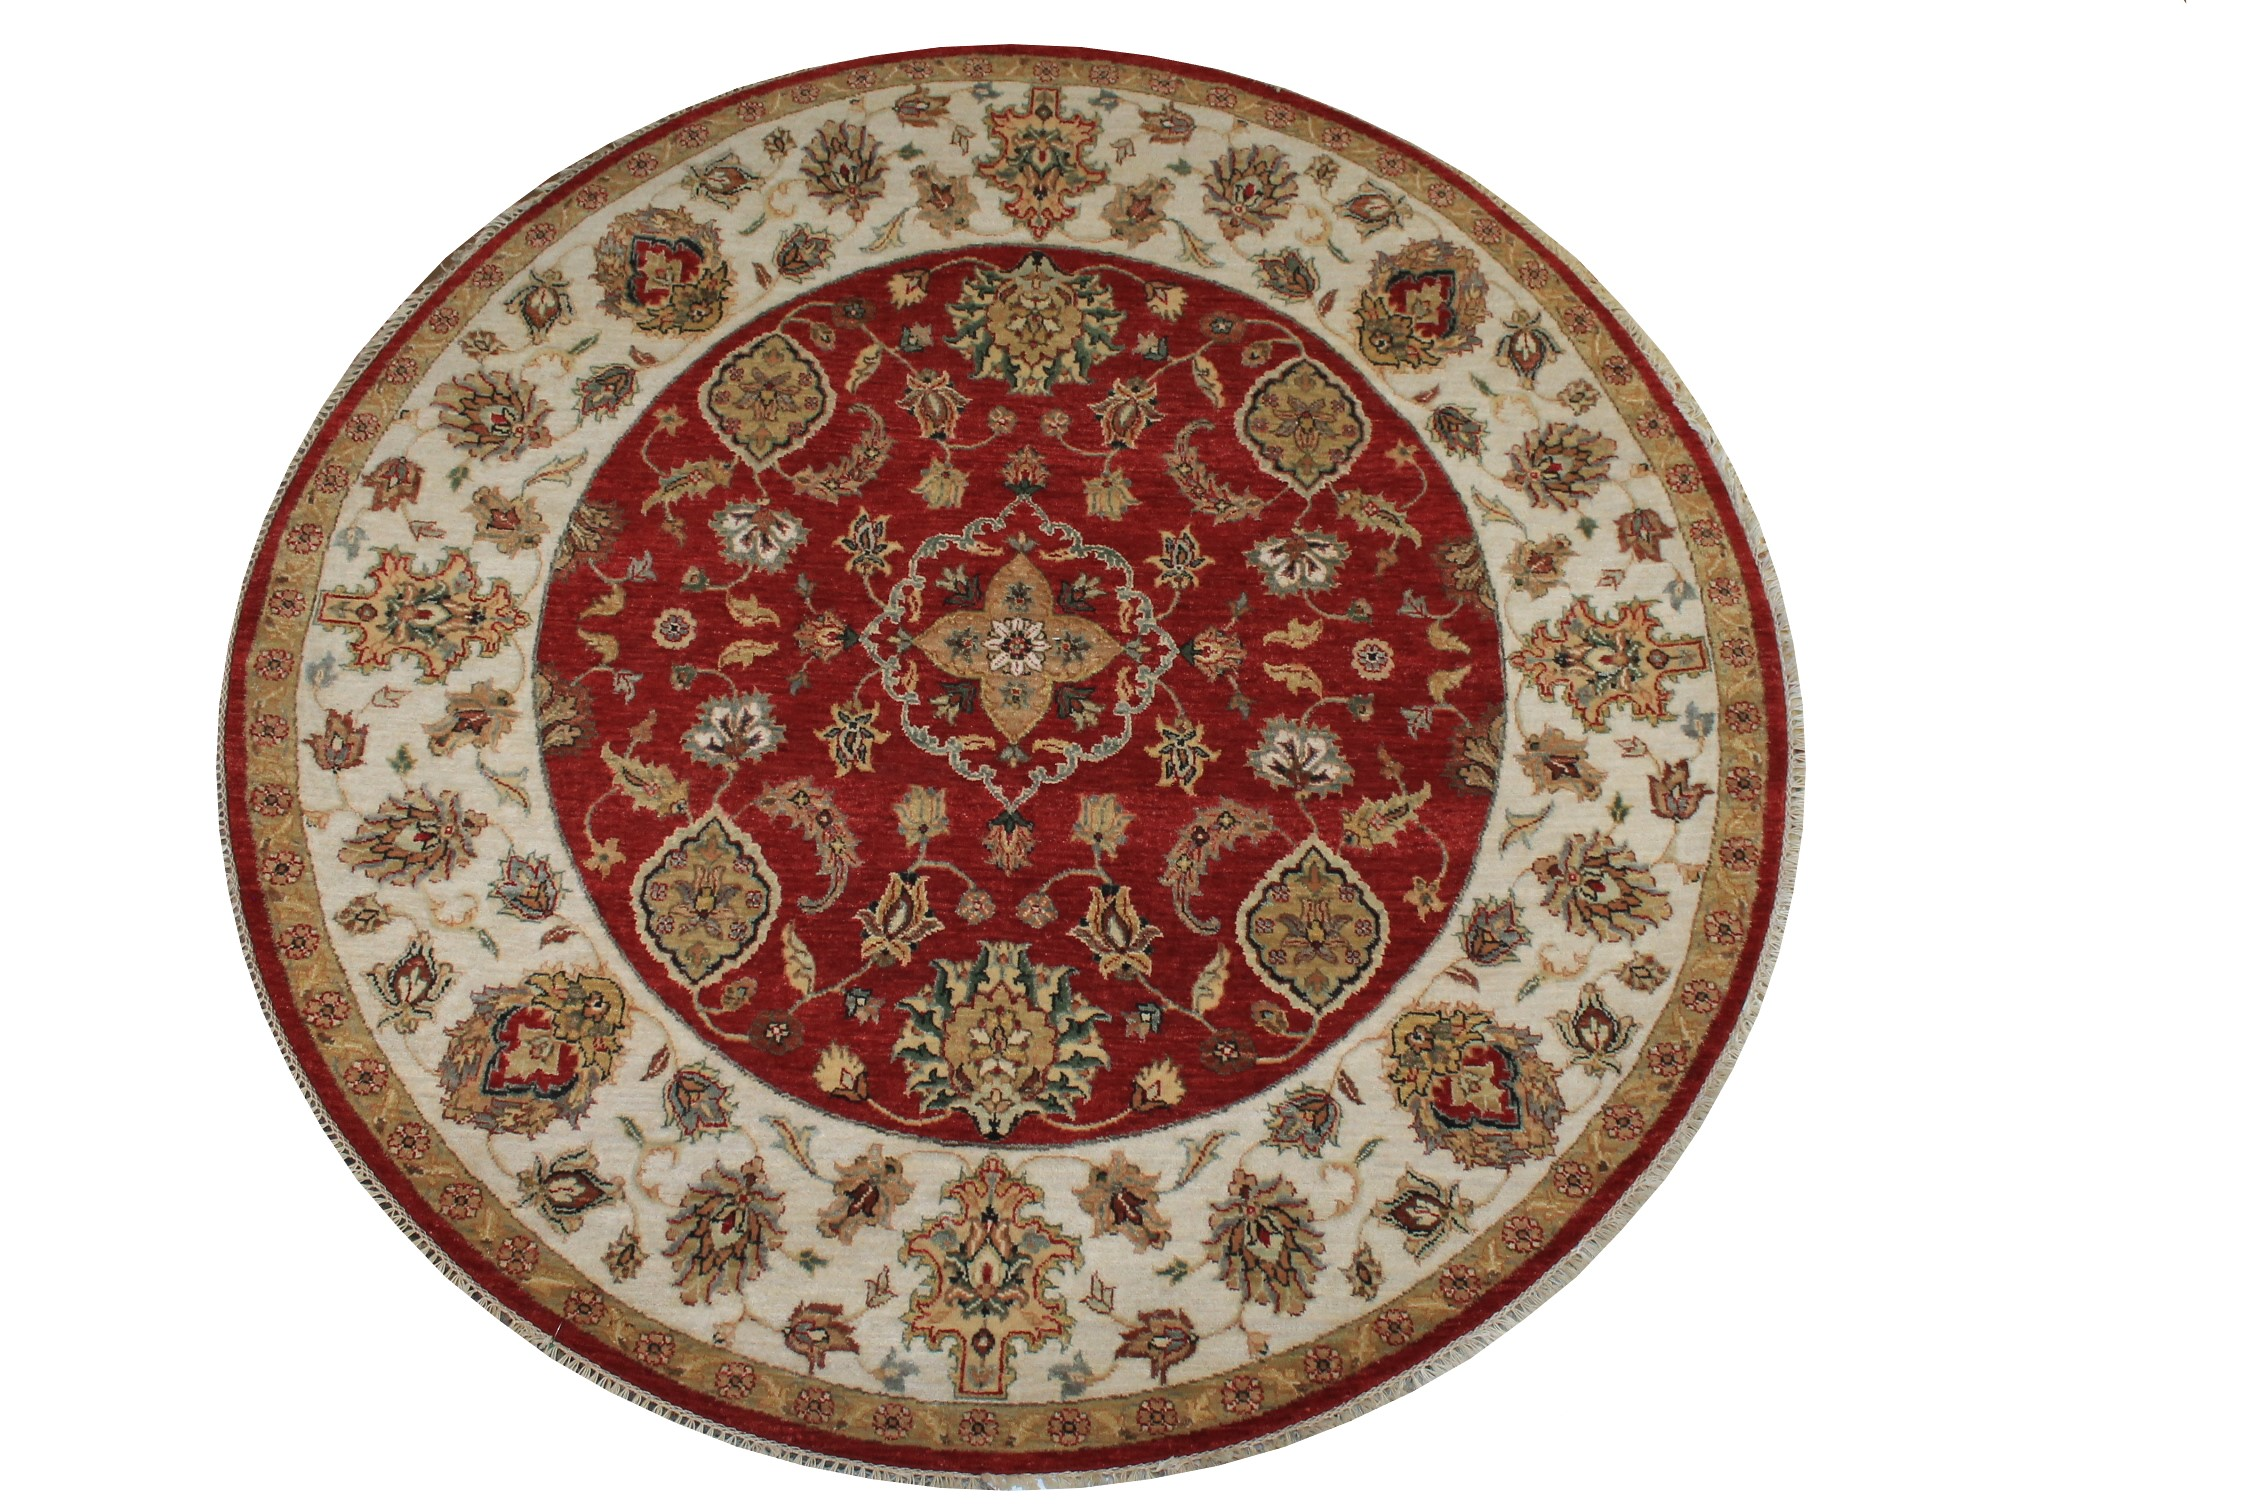 6 ft. - 7 ft. Round & Square Traditional Hand Knotted Wool Area Rug - MR024251